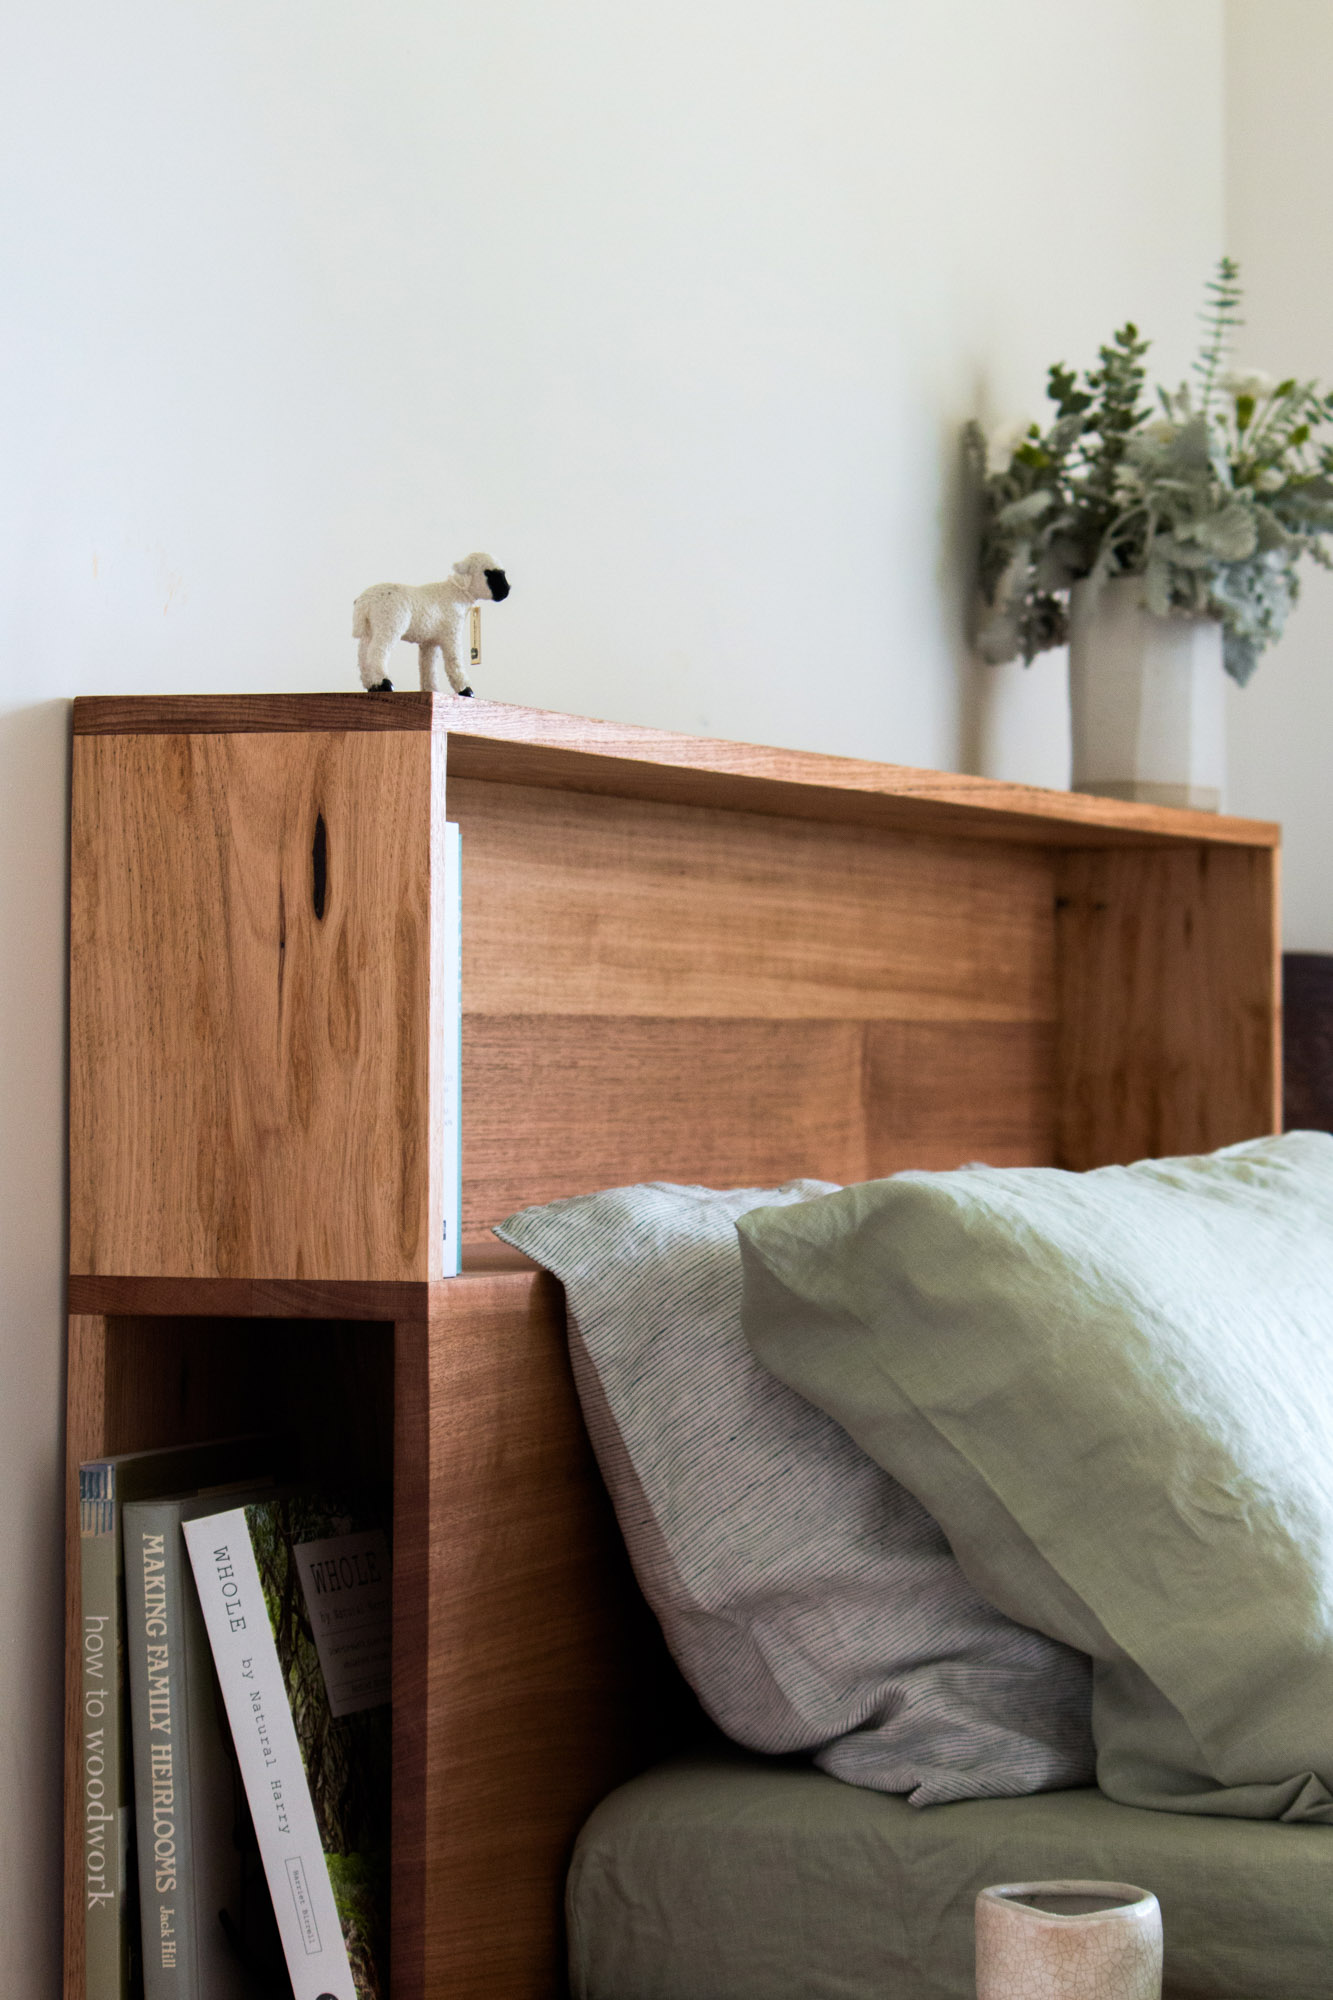 Al and Imo Handmade - Bookshelf Bedhead Platform Bed - Custom made from recycled timber - Australia - Melbourne - Surf Coast-29.jpg